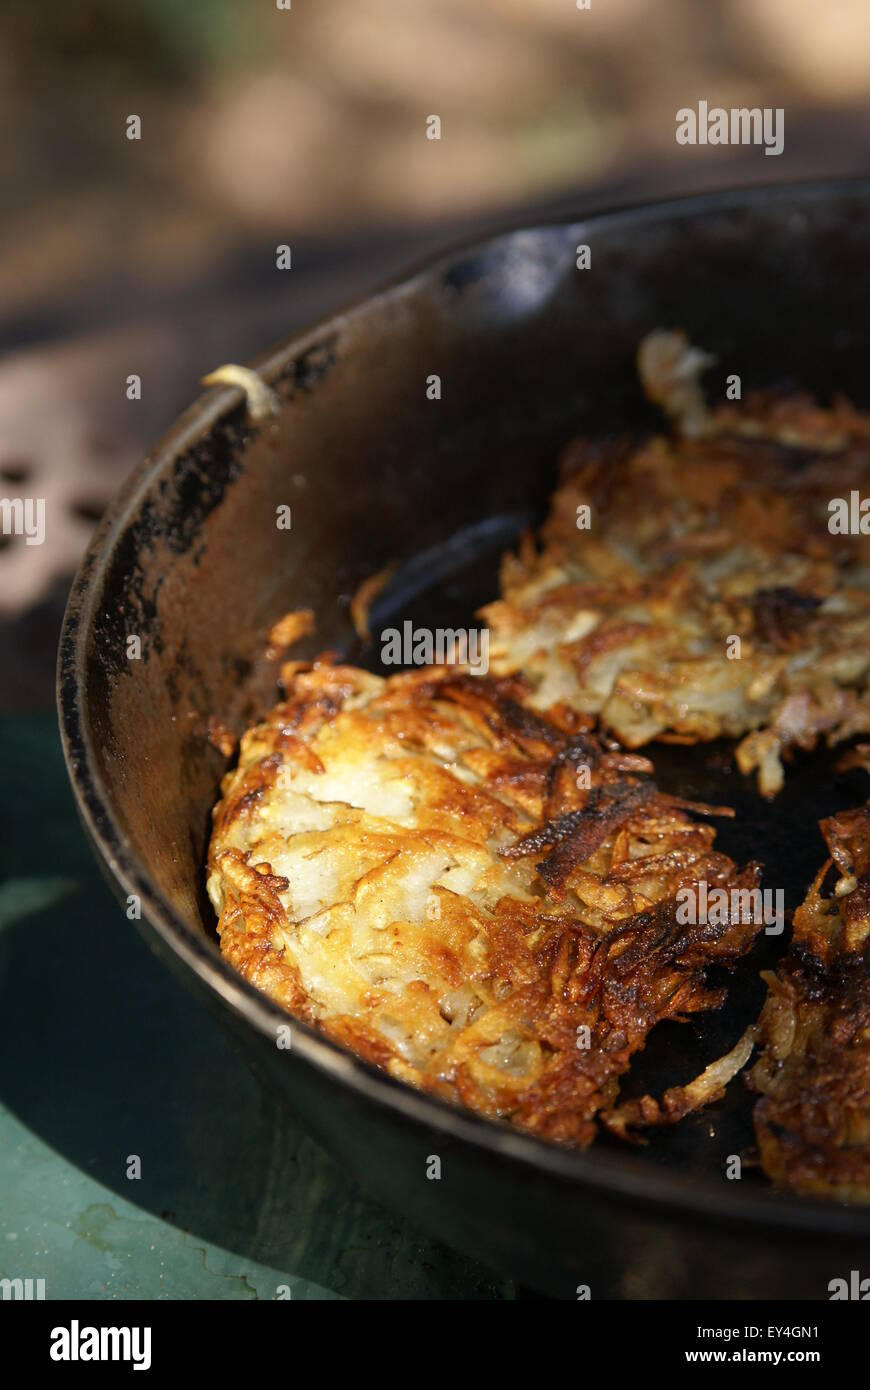 Hash brown potatoes cooking in an iron skillet outdoors. Vertical format with blurred background. - Stock Image